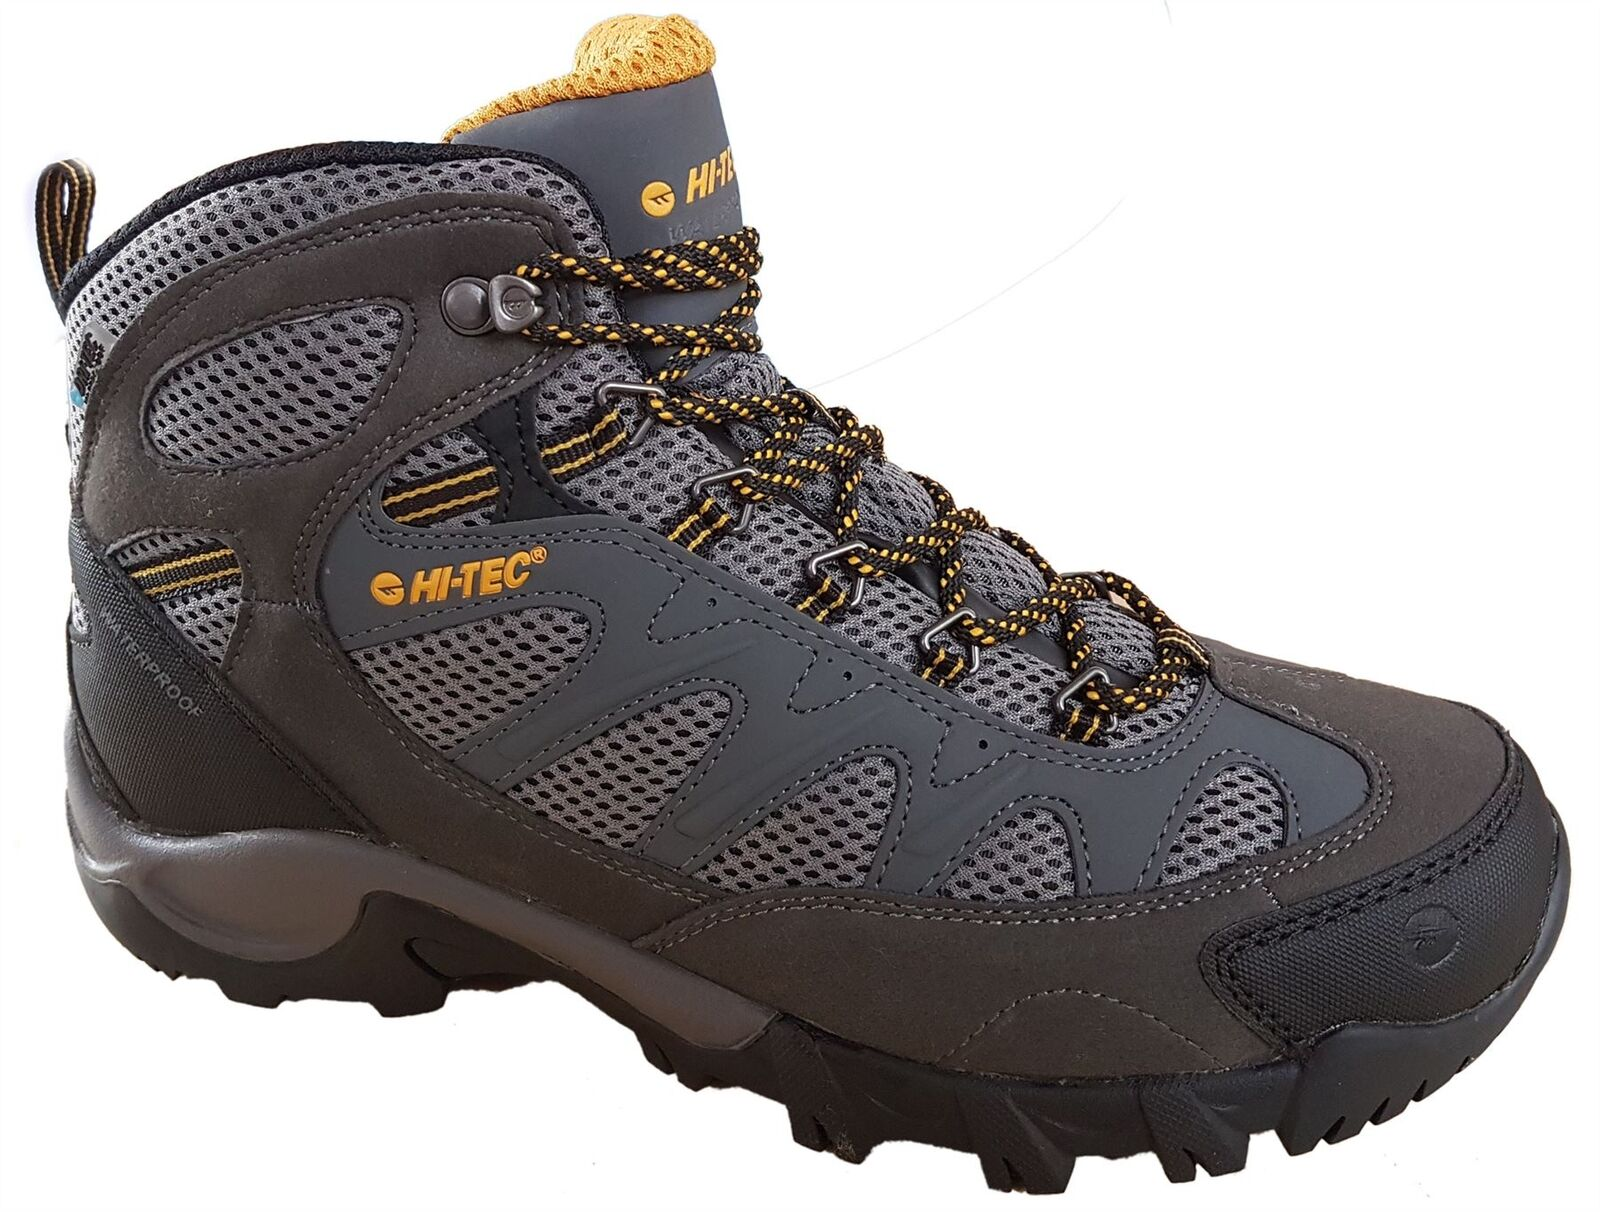 Hi-Tec Trailstone Impermeabile da men shoes Trekking Antracite grey Freddo